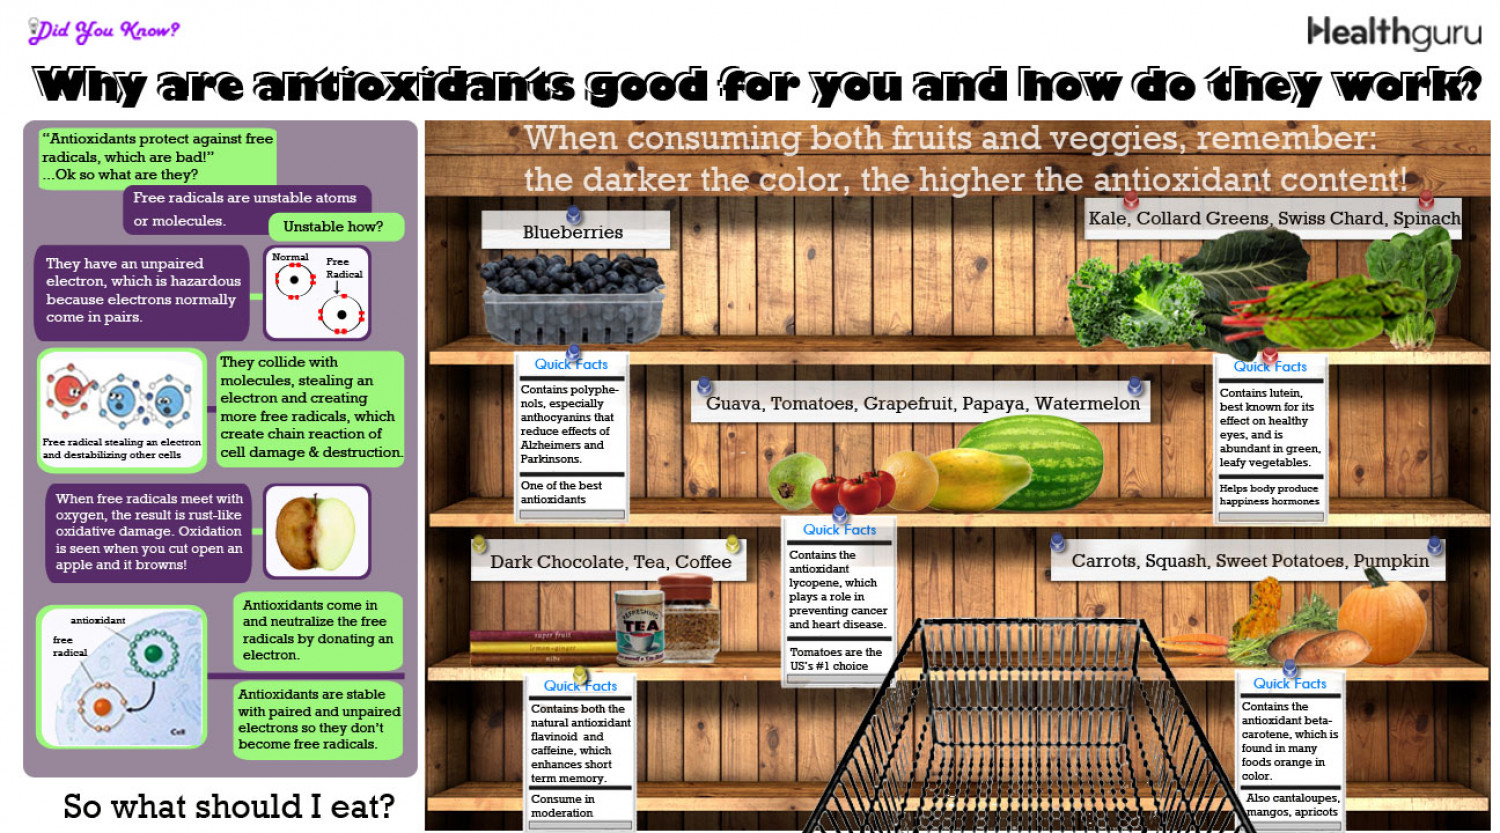 Why are antioxidants good for you and how do they work? Infographic